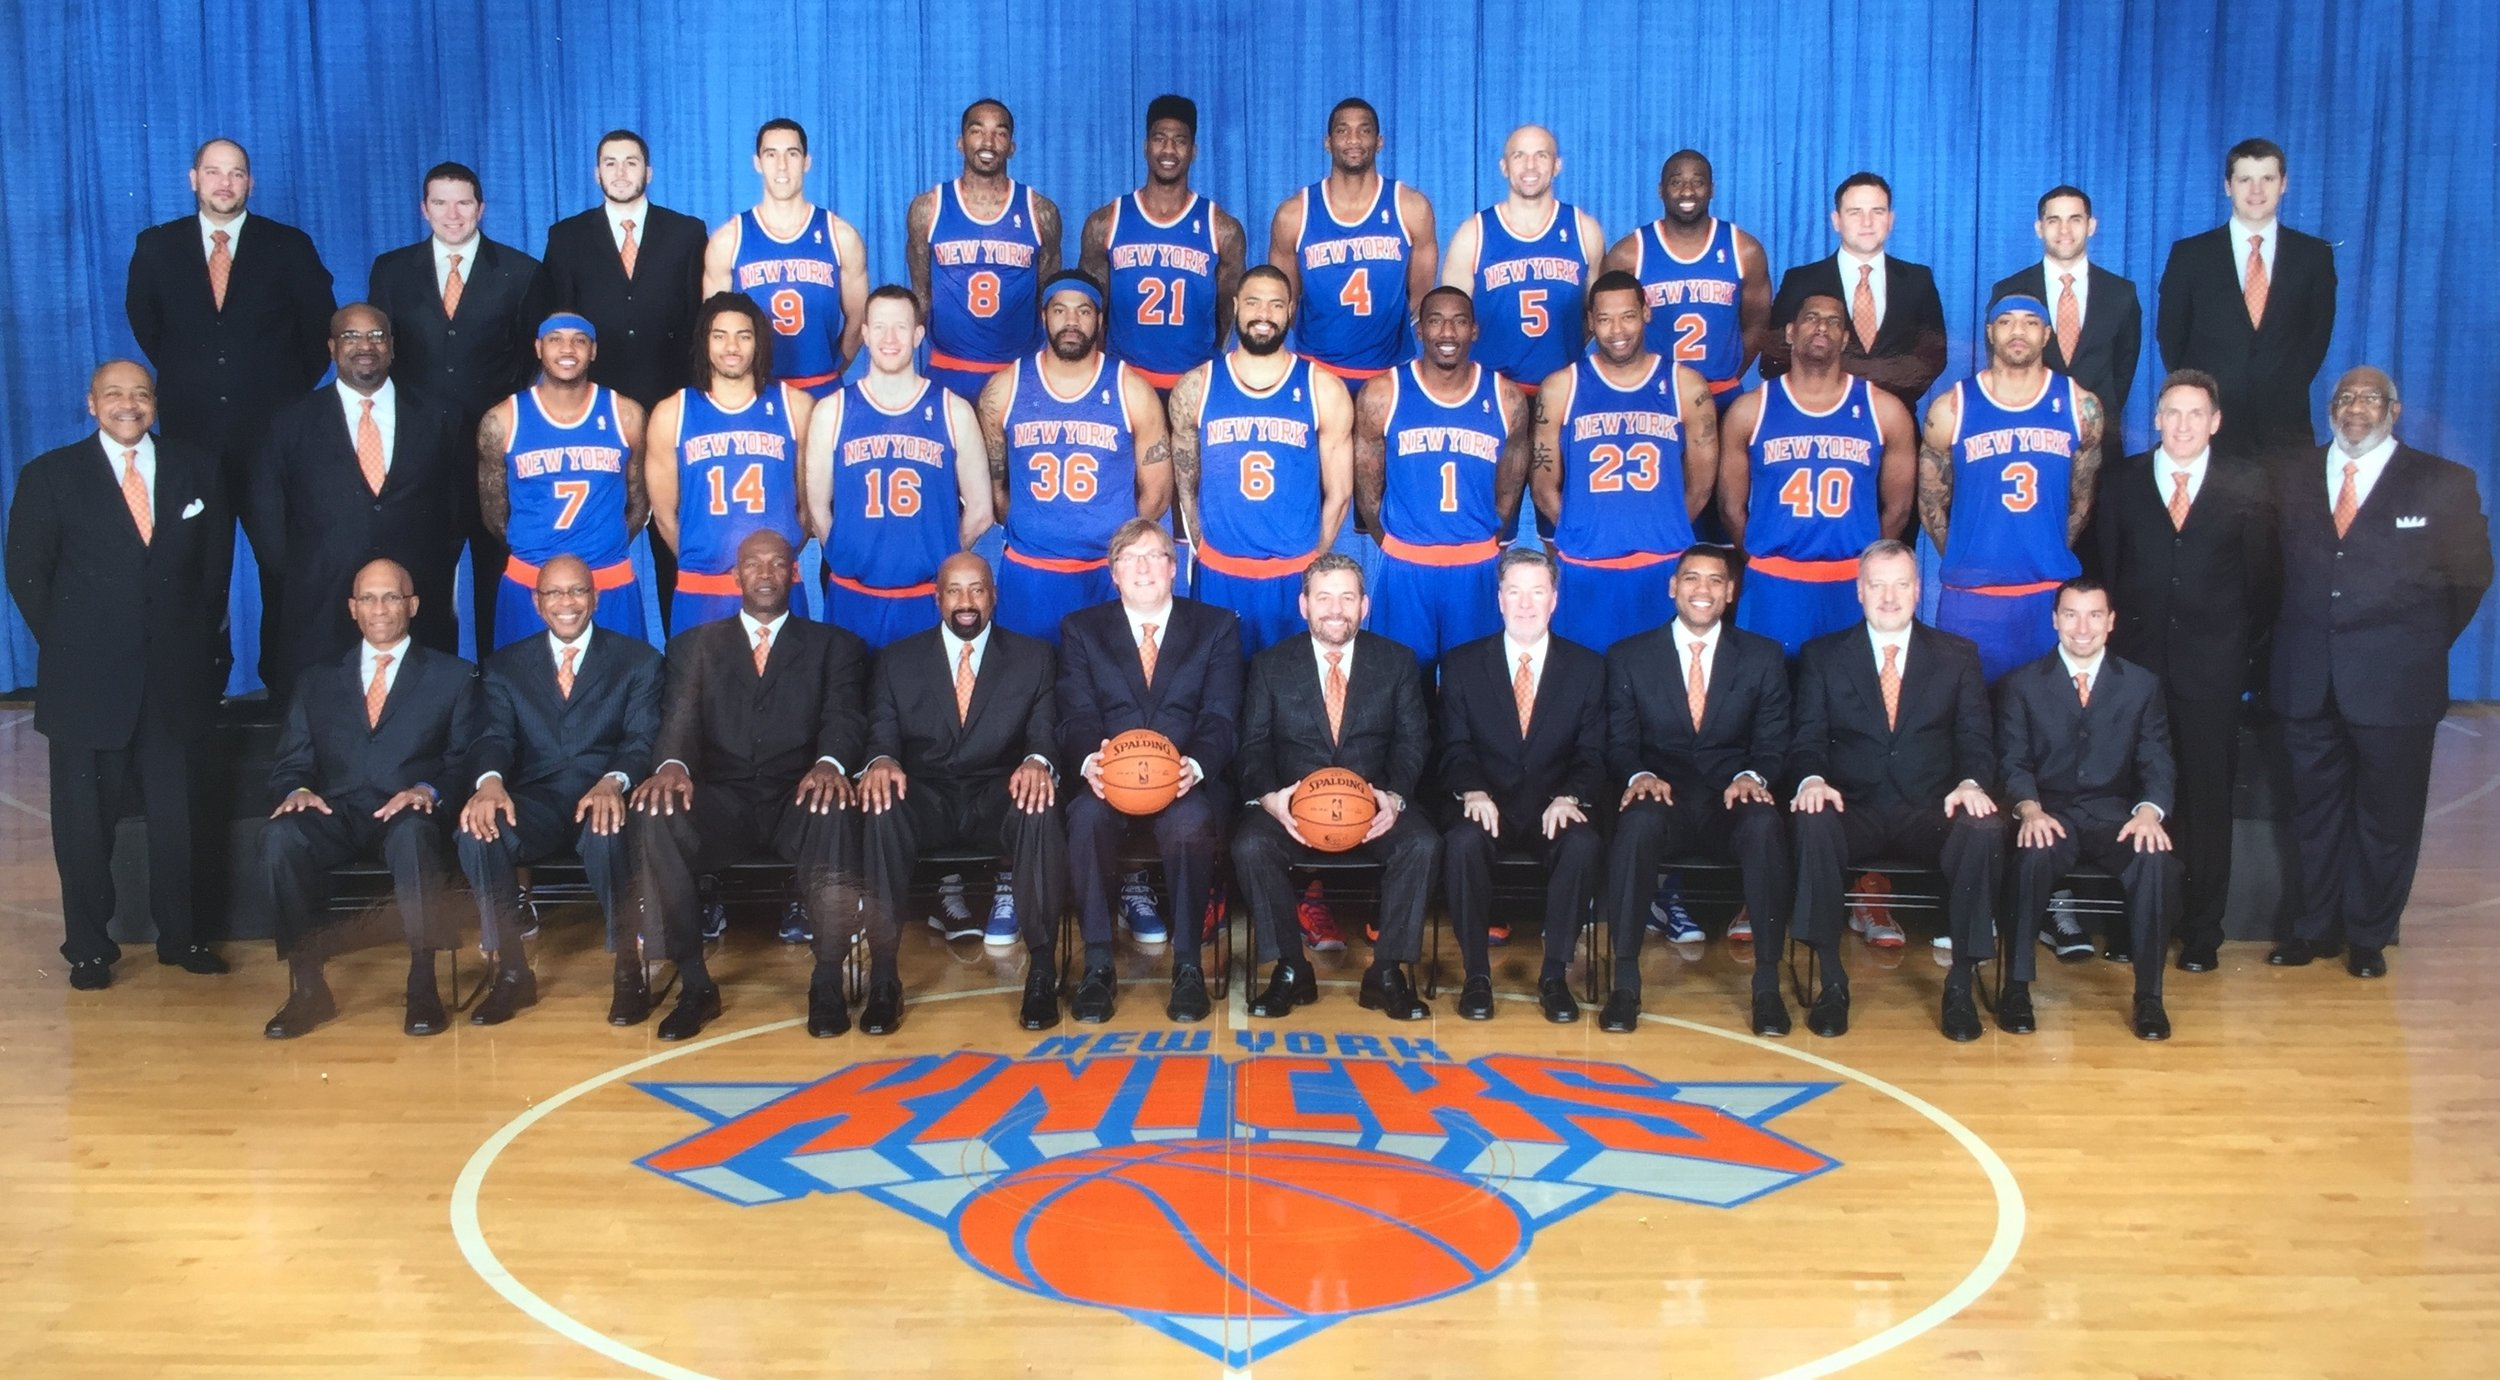 New York Knicks Professional Basketball Team